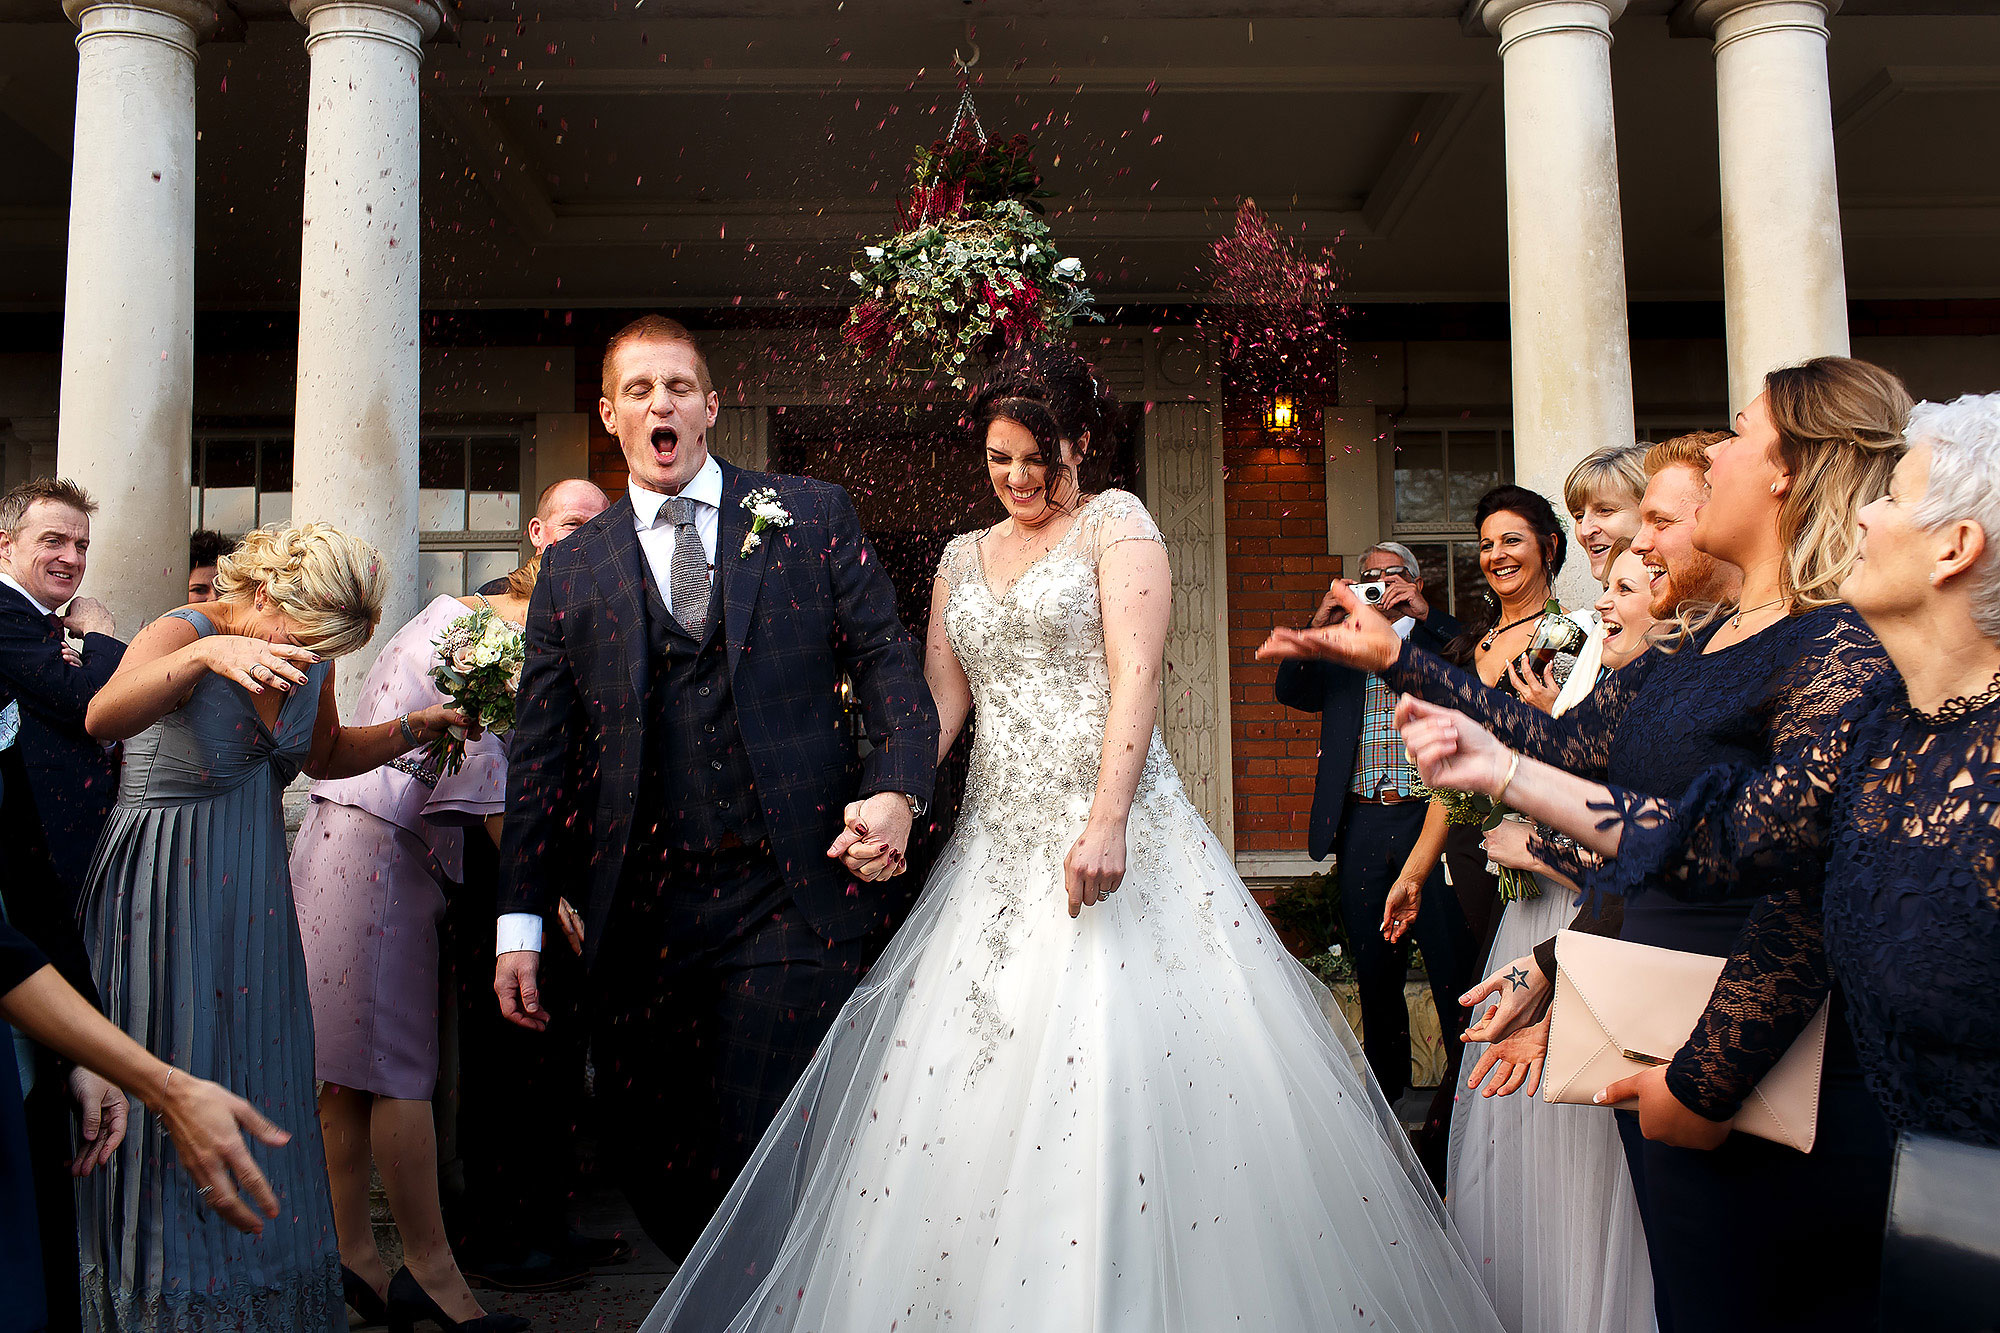 Bride and groom walking out of the pillared entrance as wedding guests throw deep red confetti | Eaves Hall wedding photography by Toni Darcy